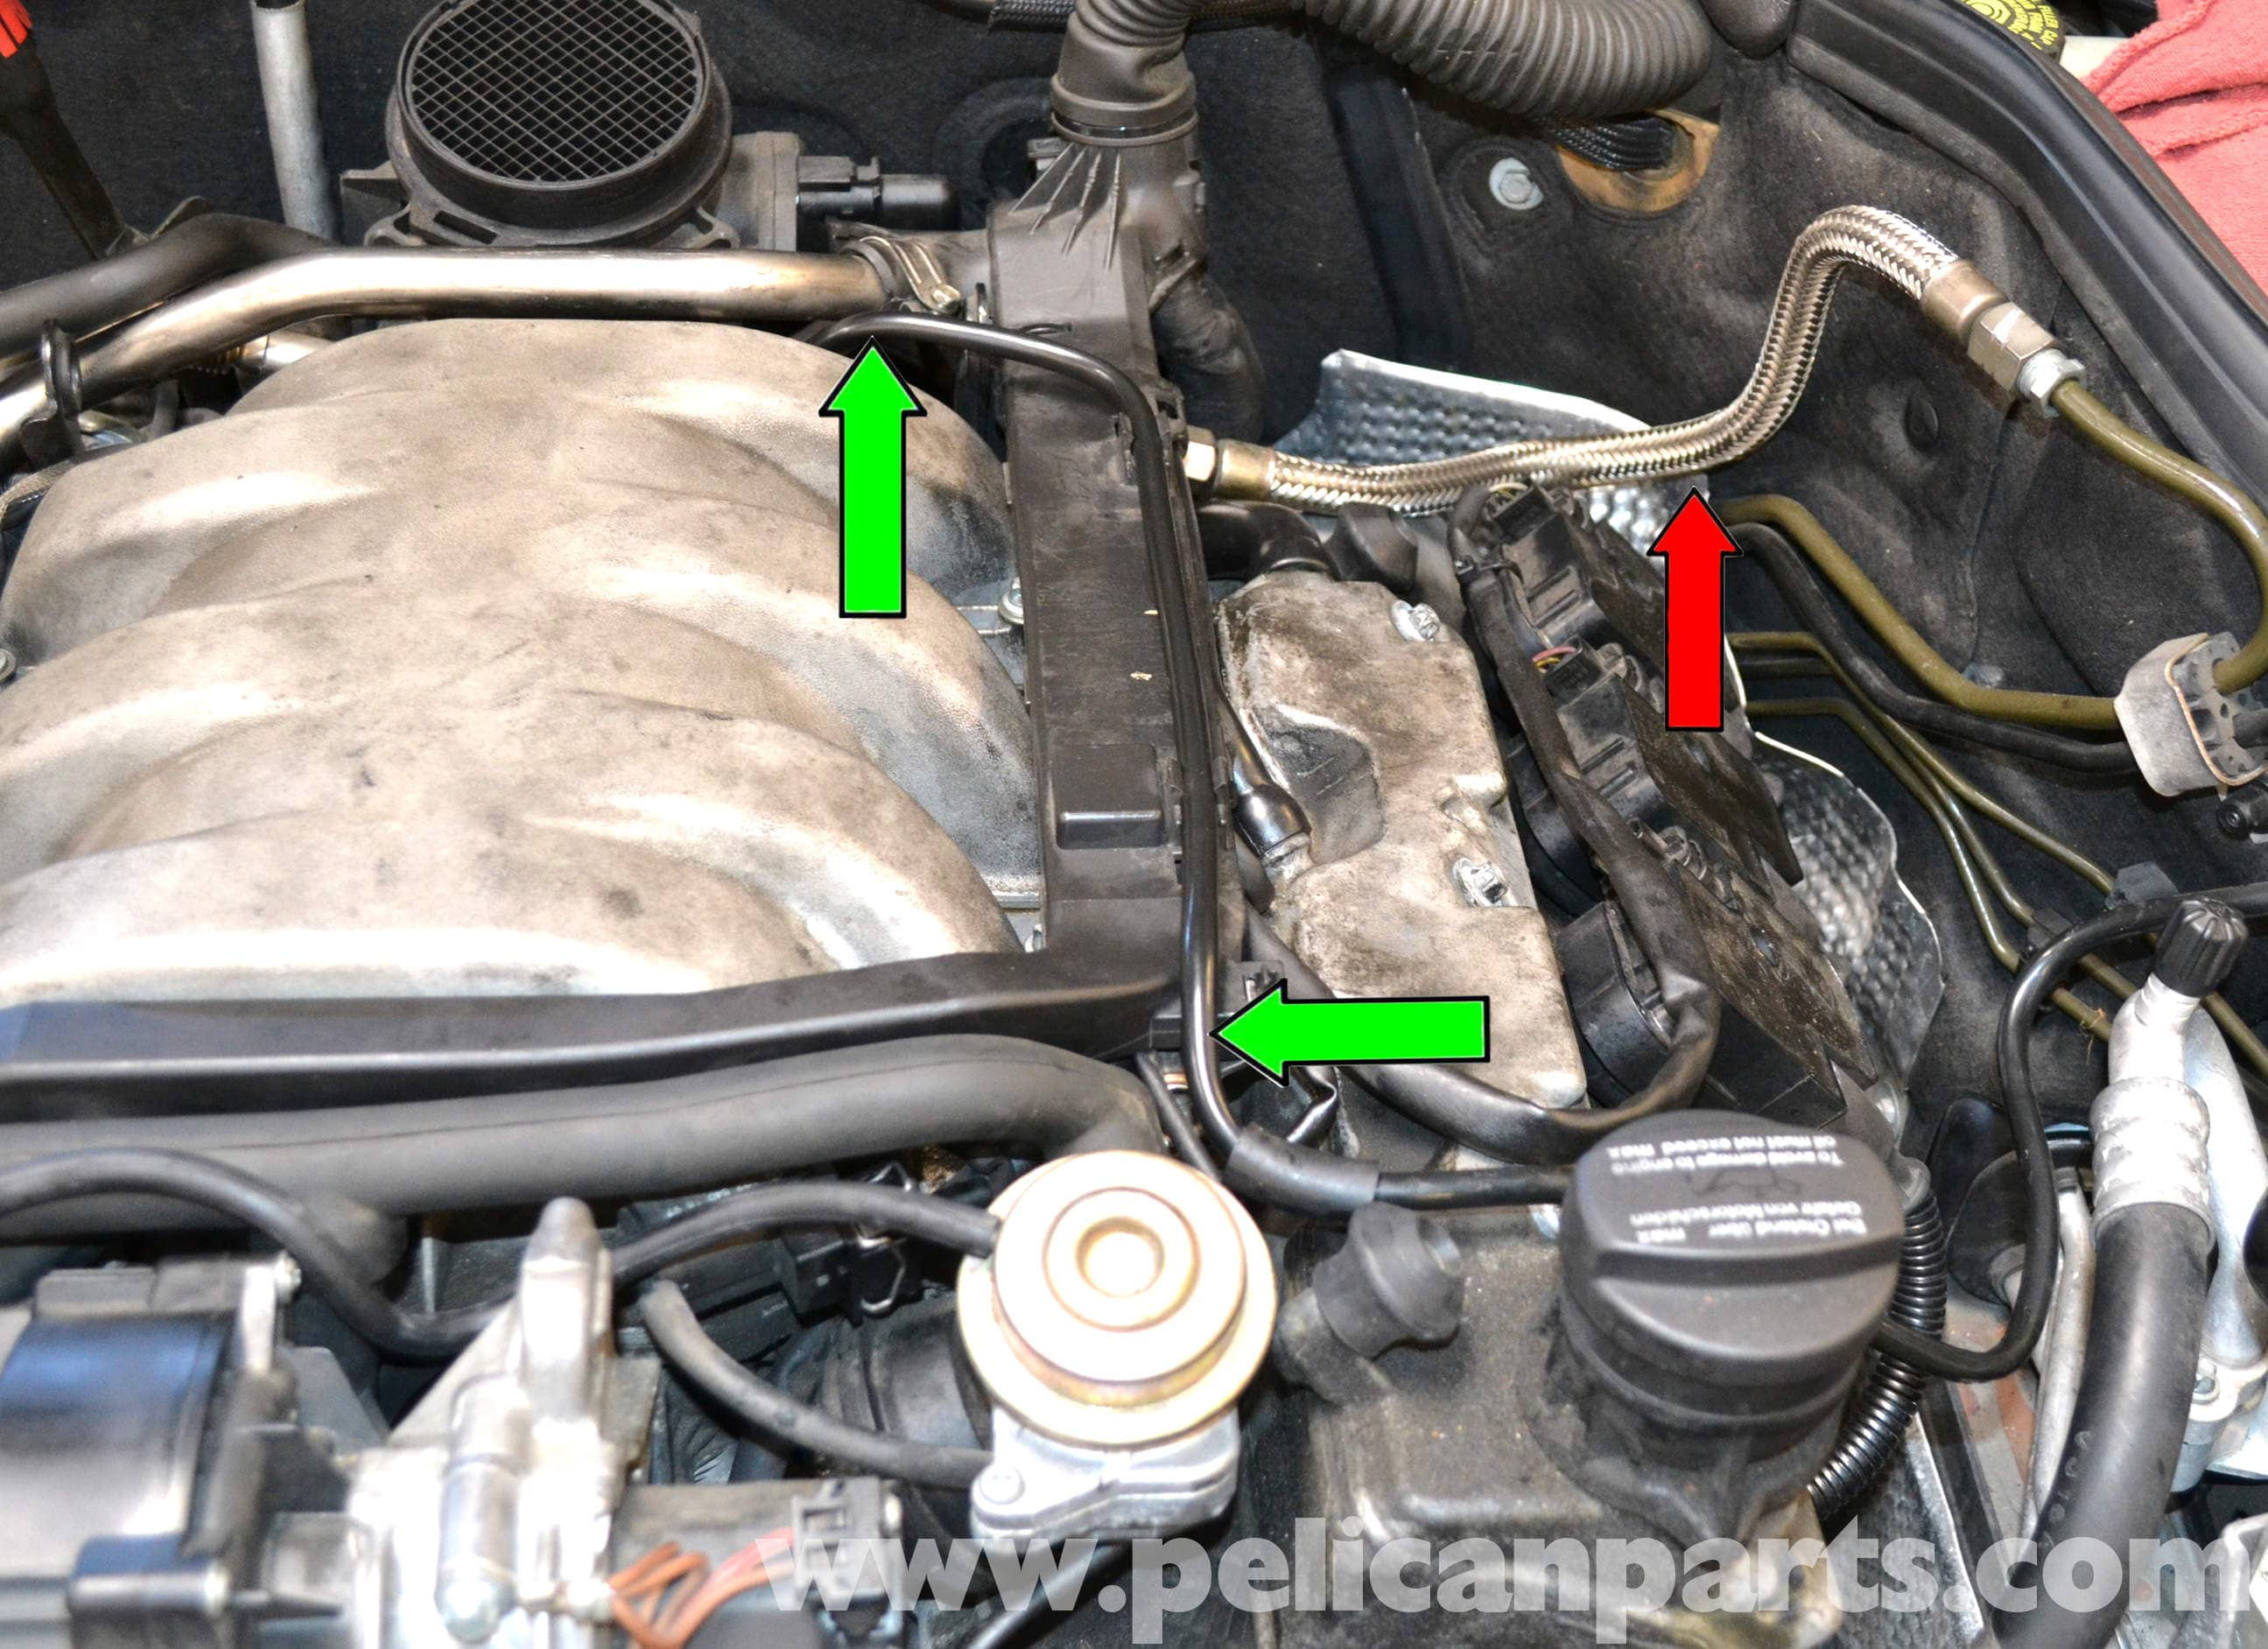 C240 W203 Fuse Box Controlling Transmission 43 Wiring Diagram Pic06 Mercedes Benz Fuel Injector Replacement 2001 2007 C230 At